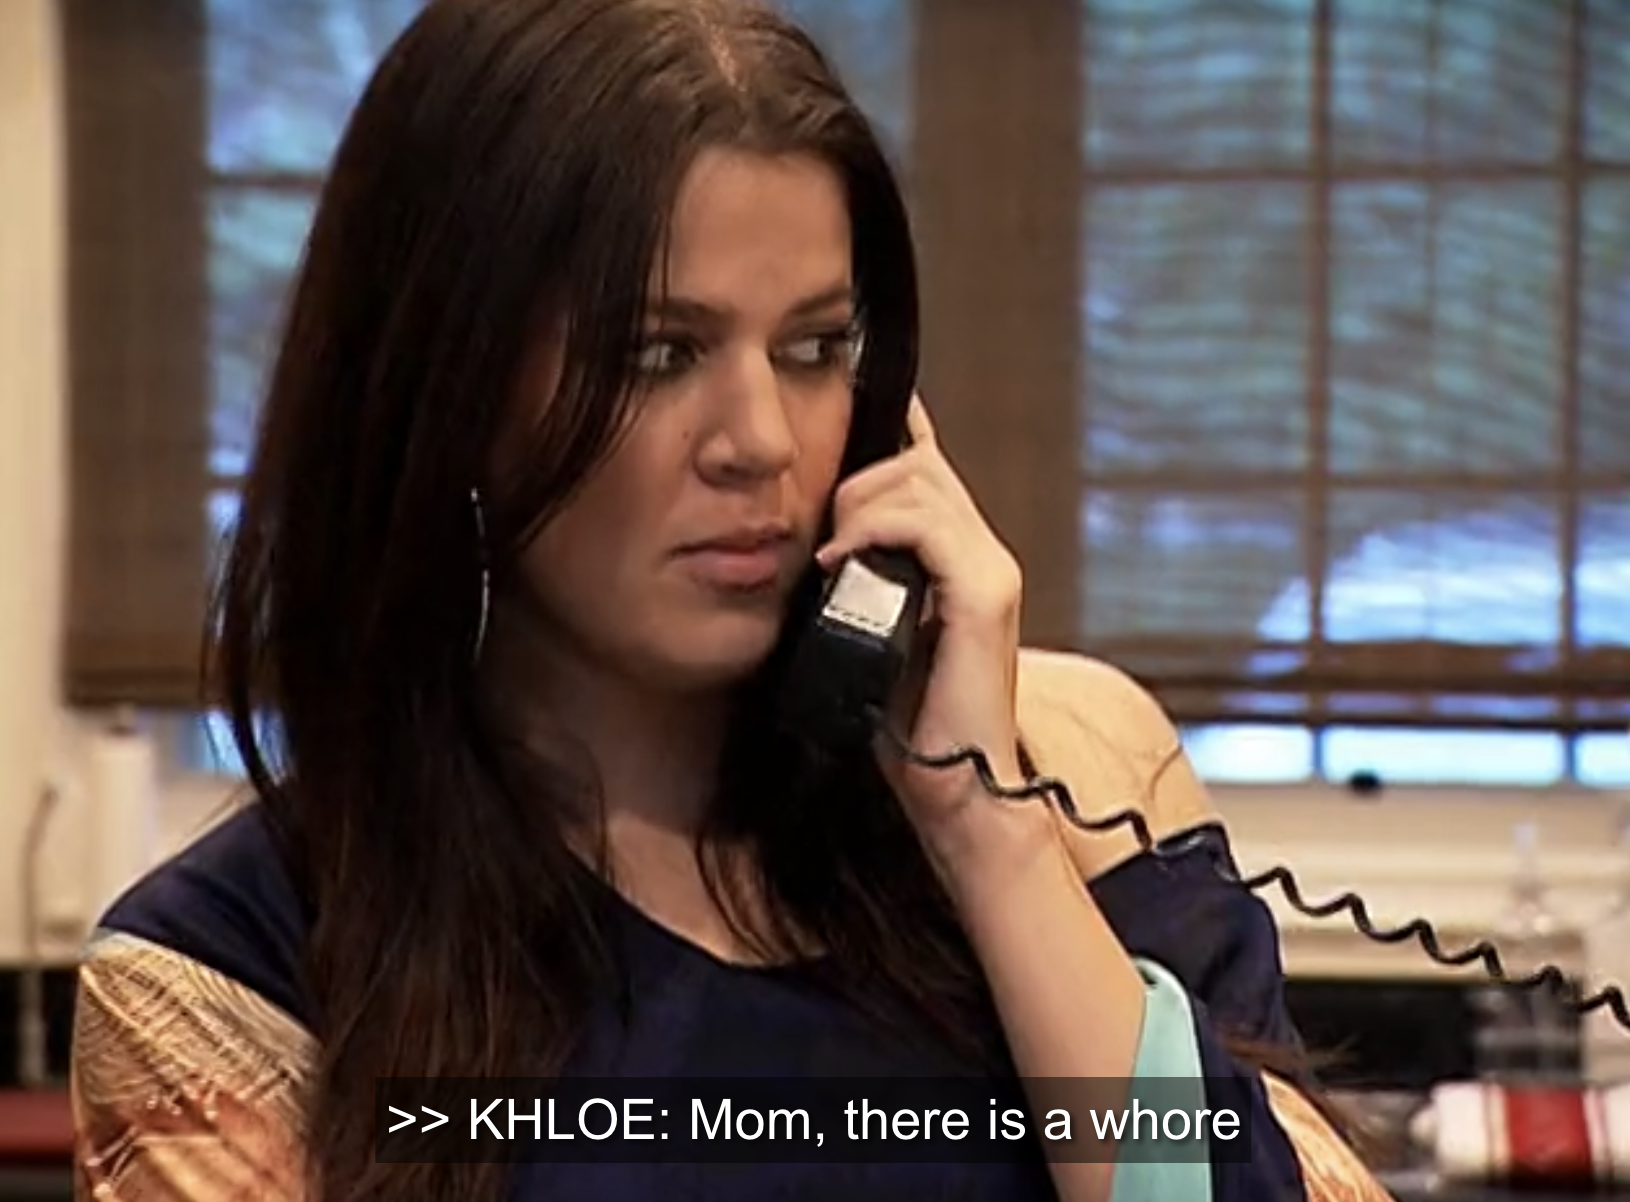 """Khloe on phone: """"Mom, there is a whore"""""""